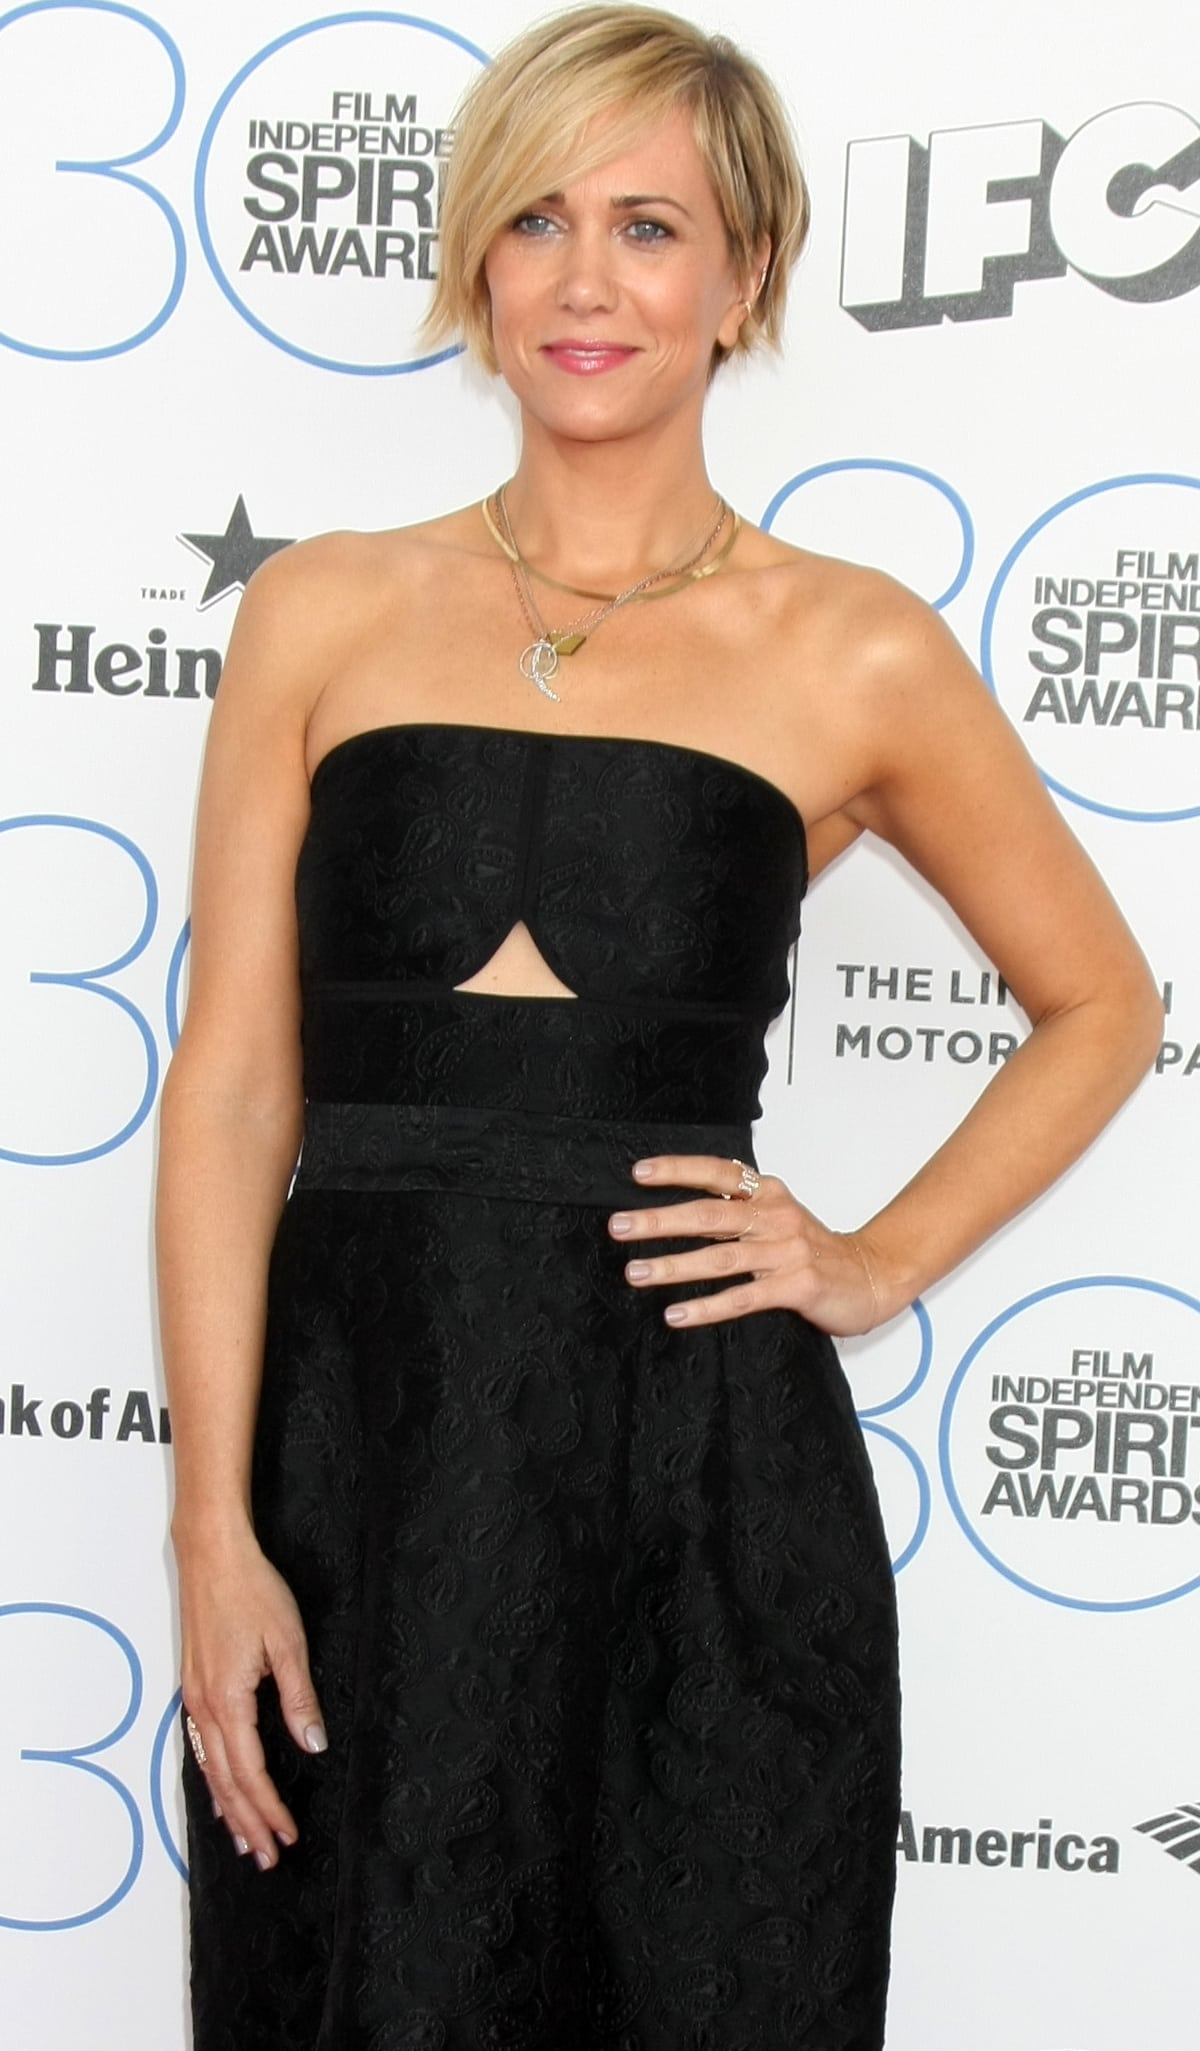 Kristen Wiig has a net worth of $25 million and is best known for her comedy films and her work on Saturday Night Live